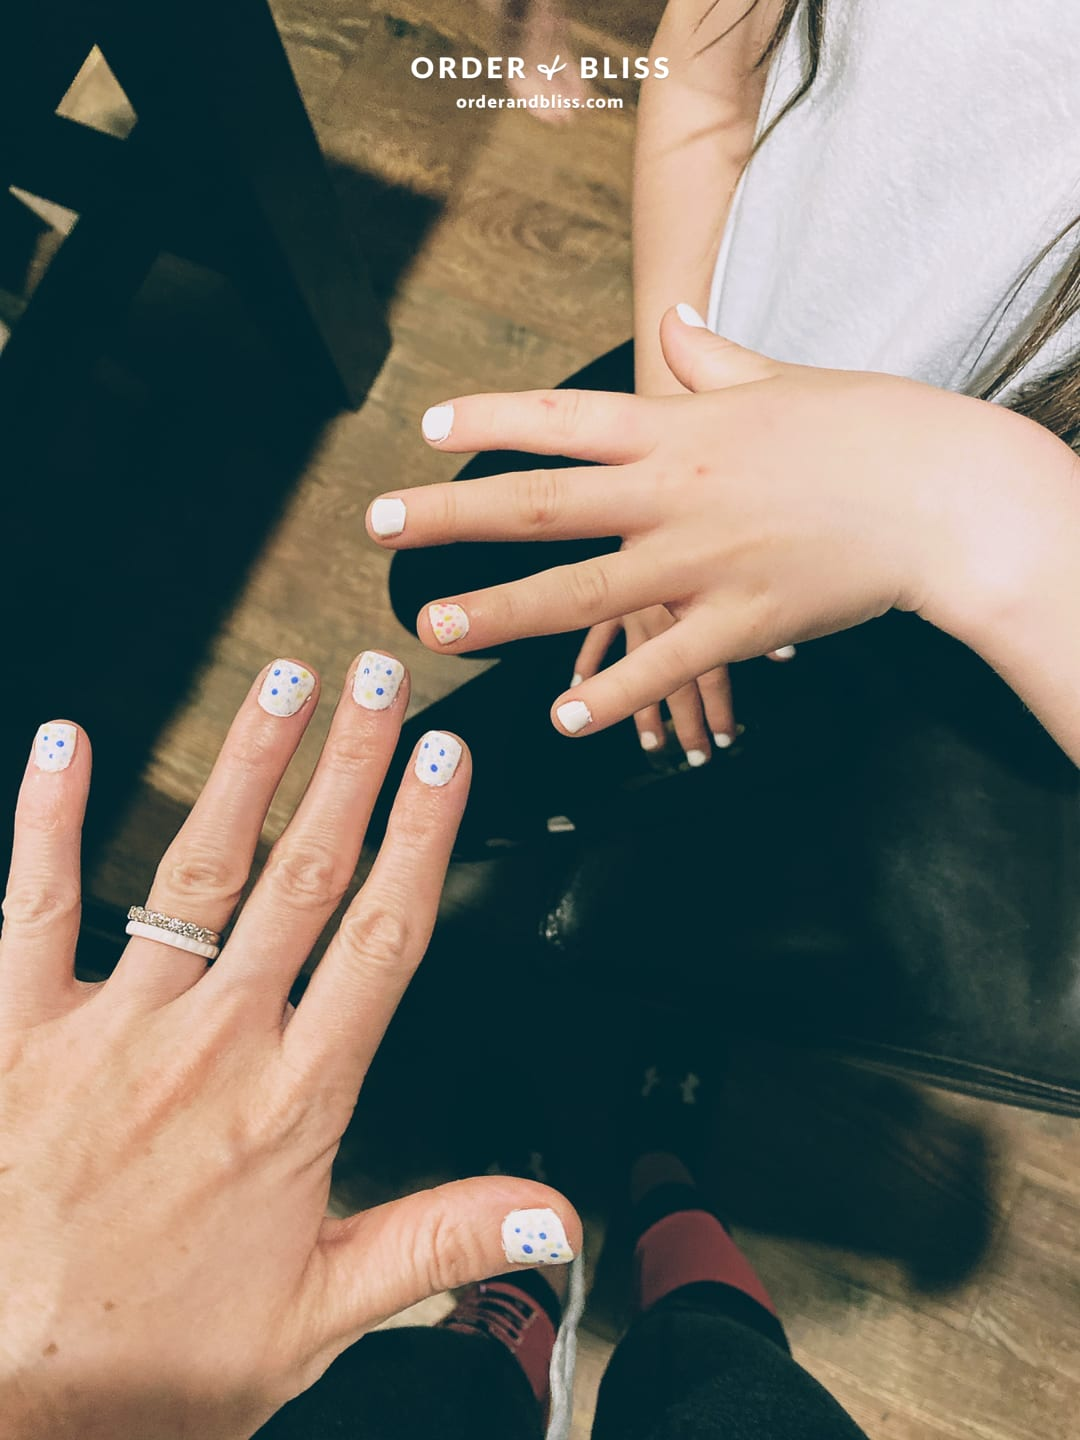 Mom & daughter matching gel nails